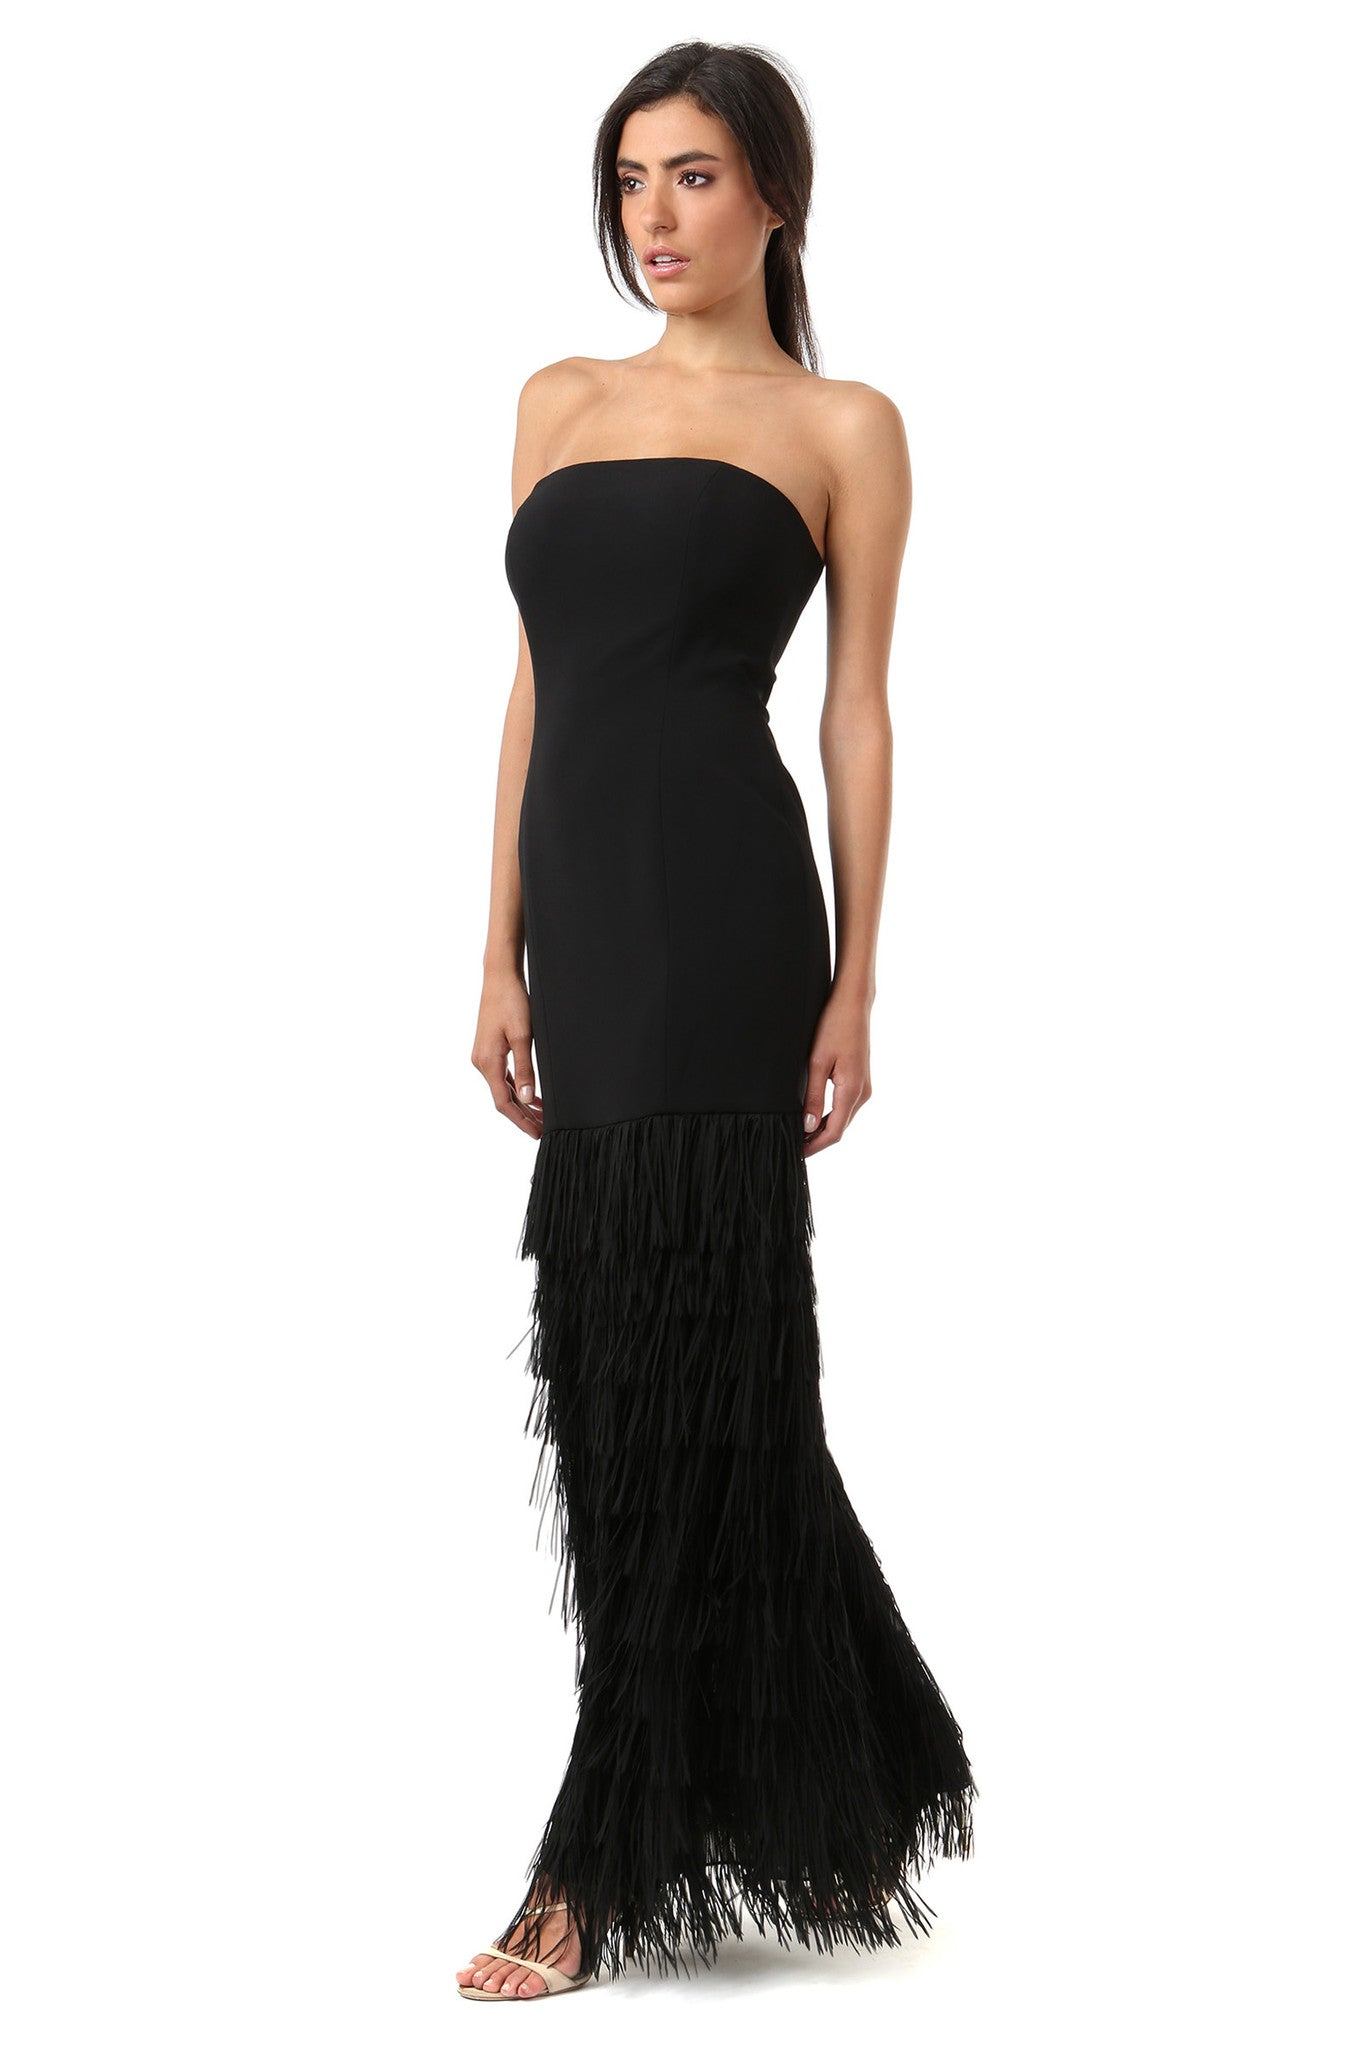 Jay Godfrey Black Fringe Strapless Gown - Side View